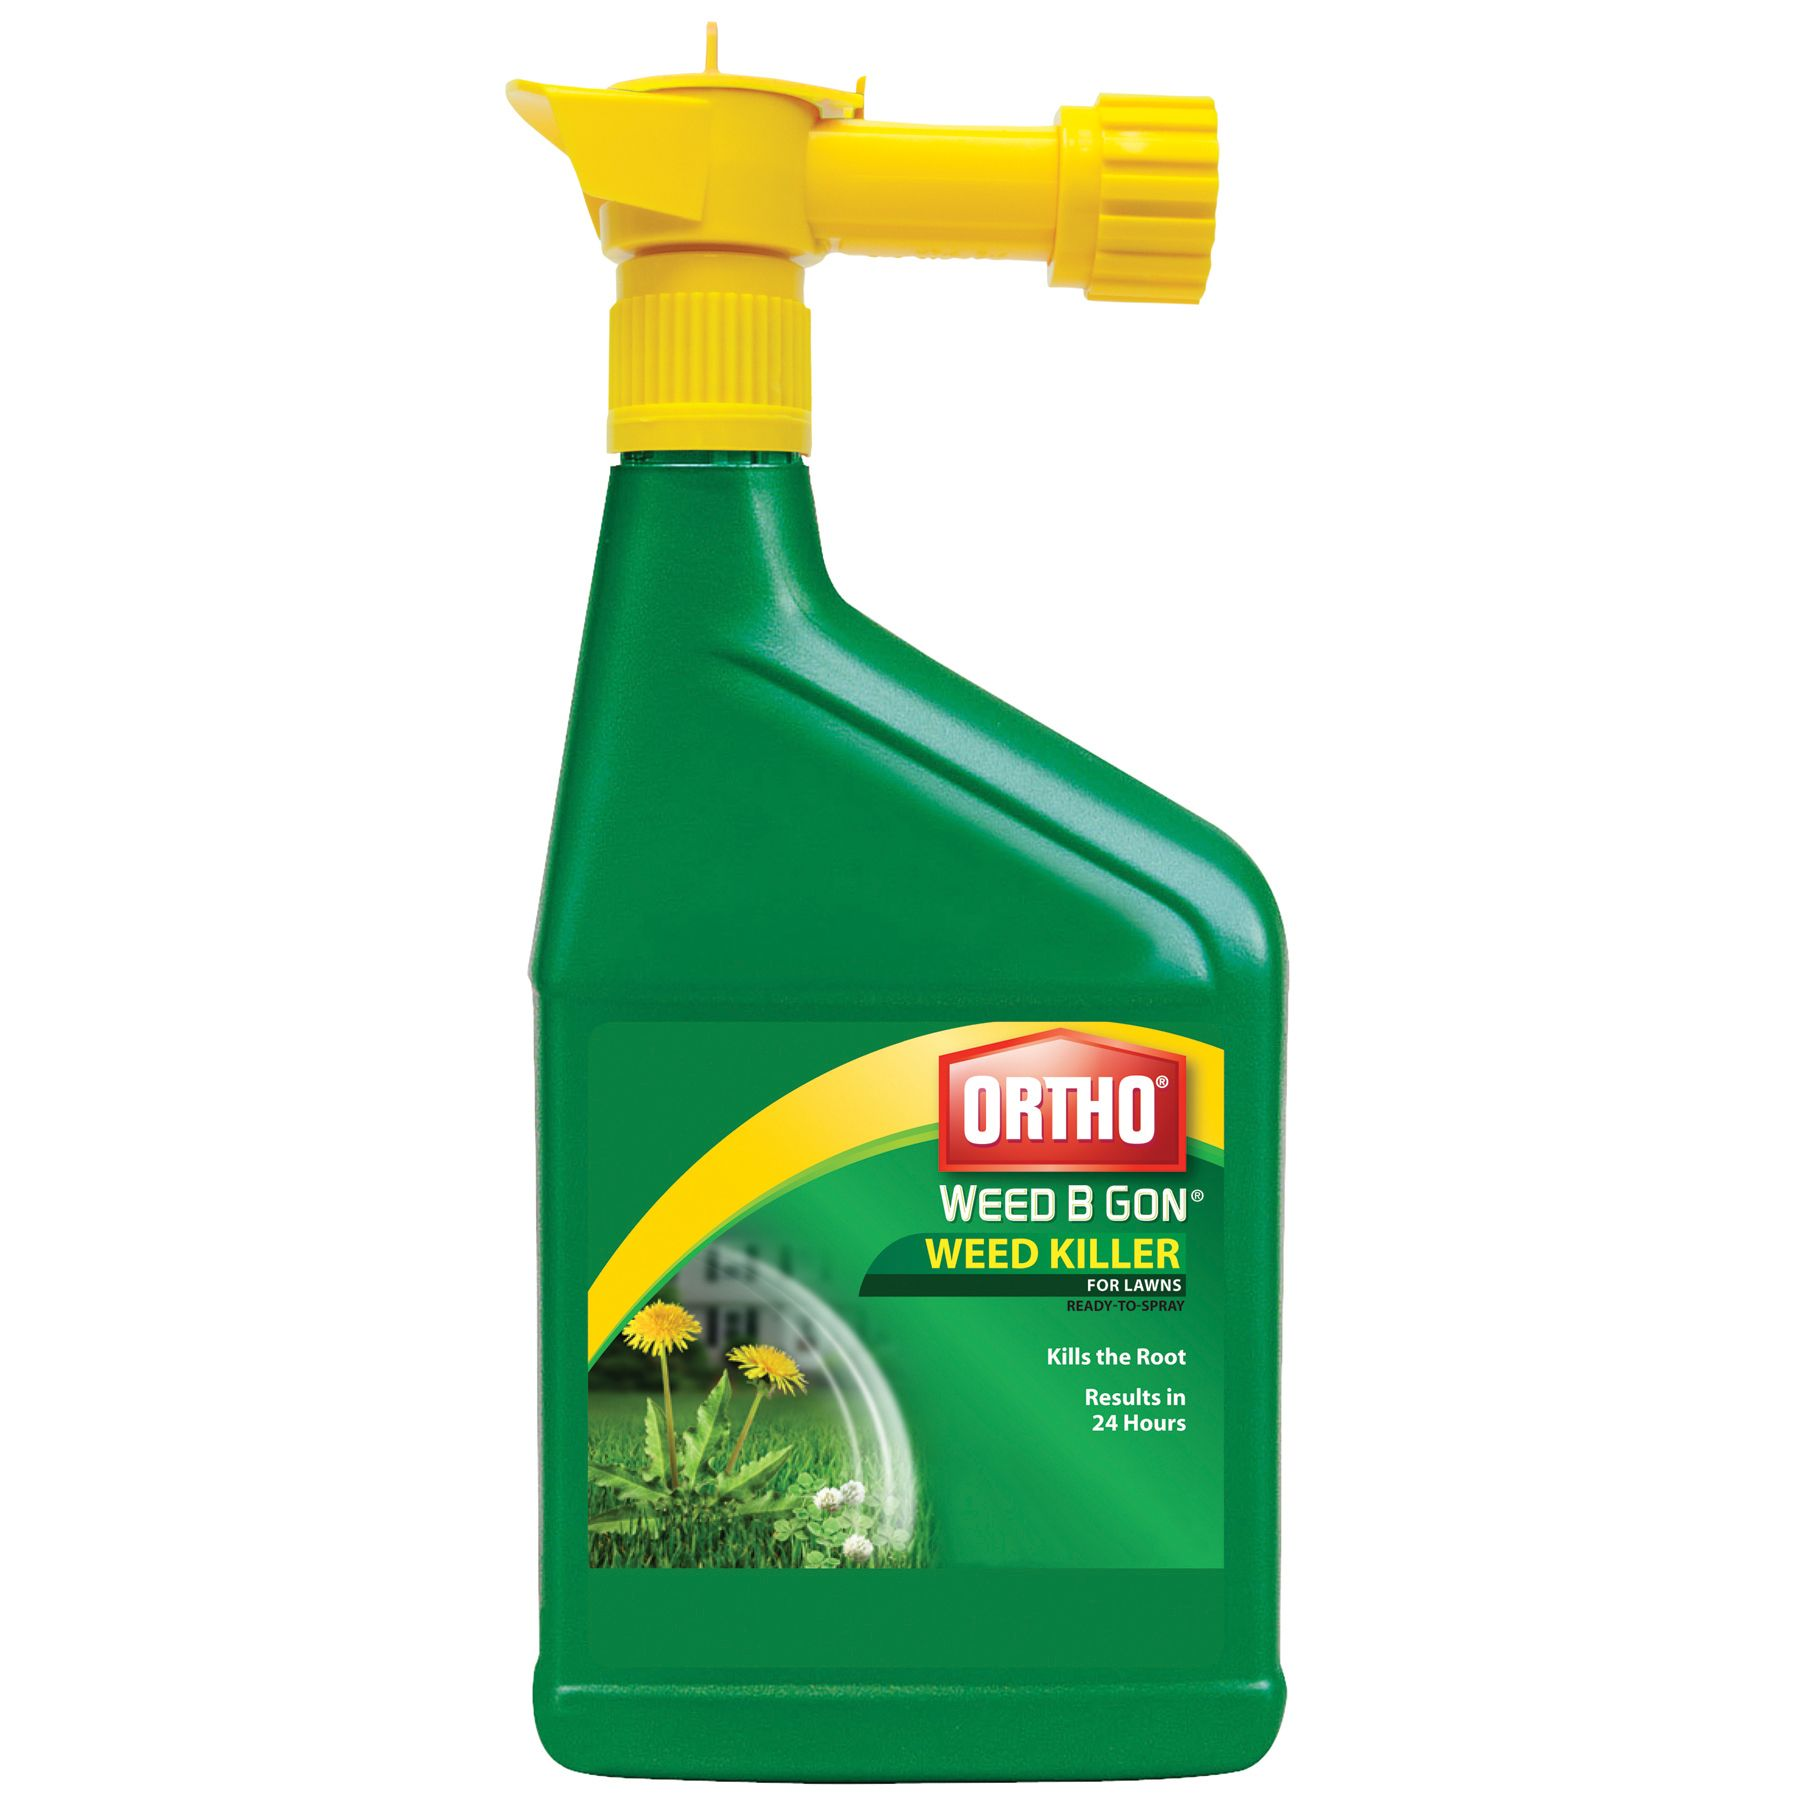 Weed B Gon® Weed Killer for Lawns